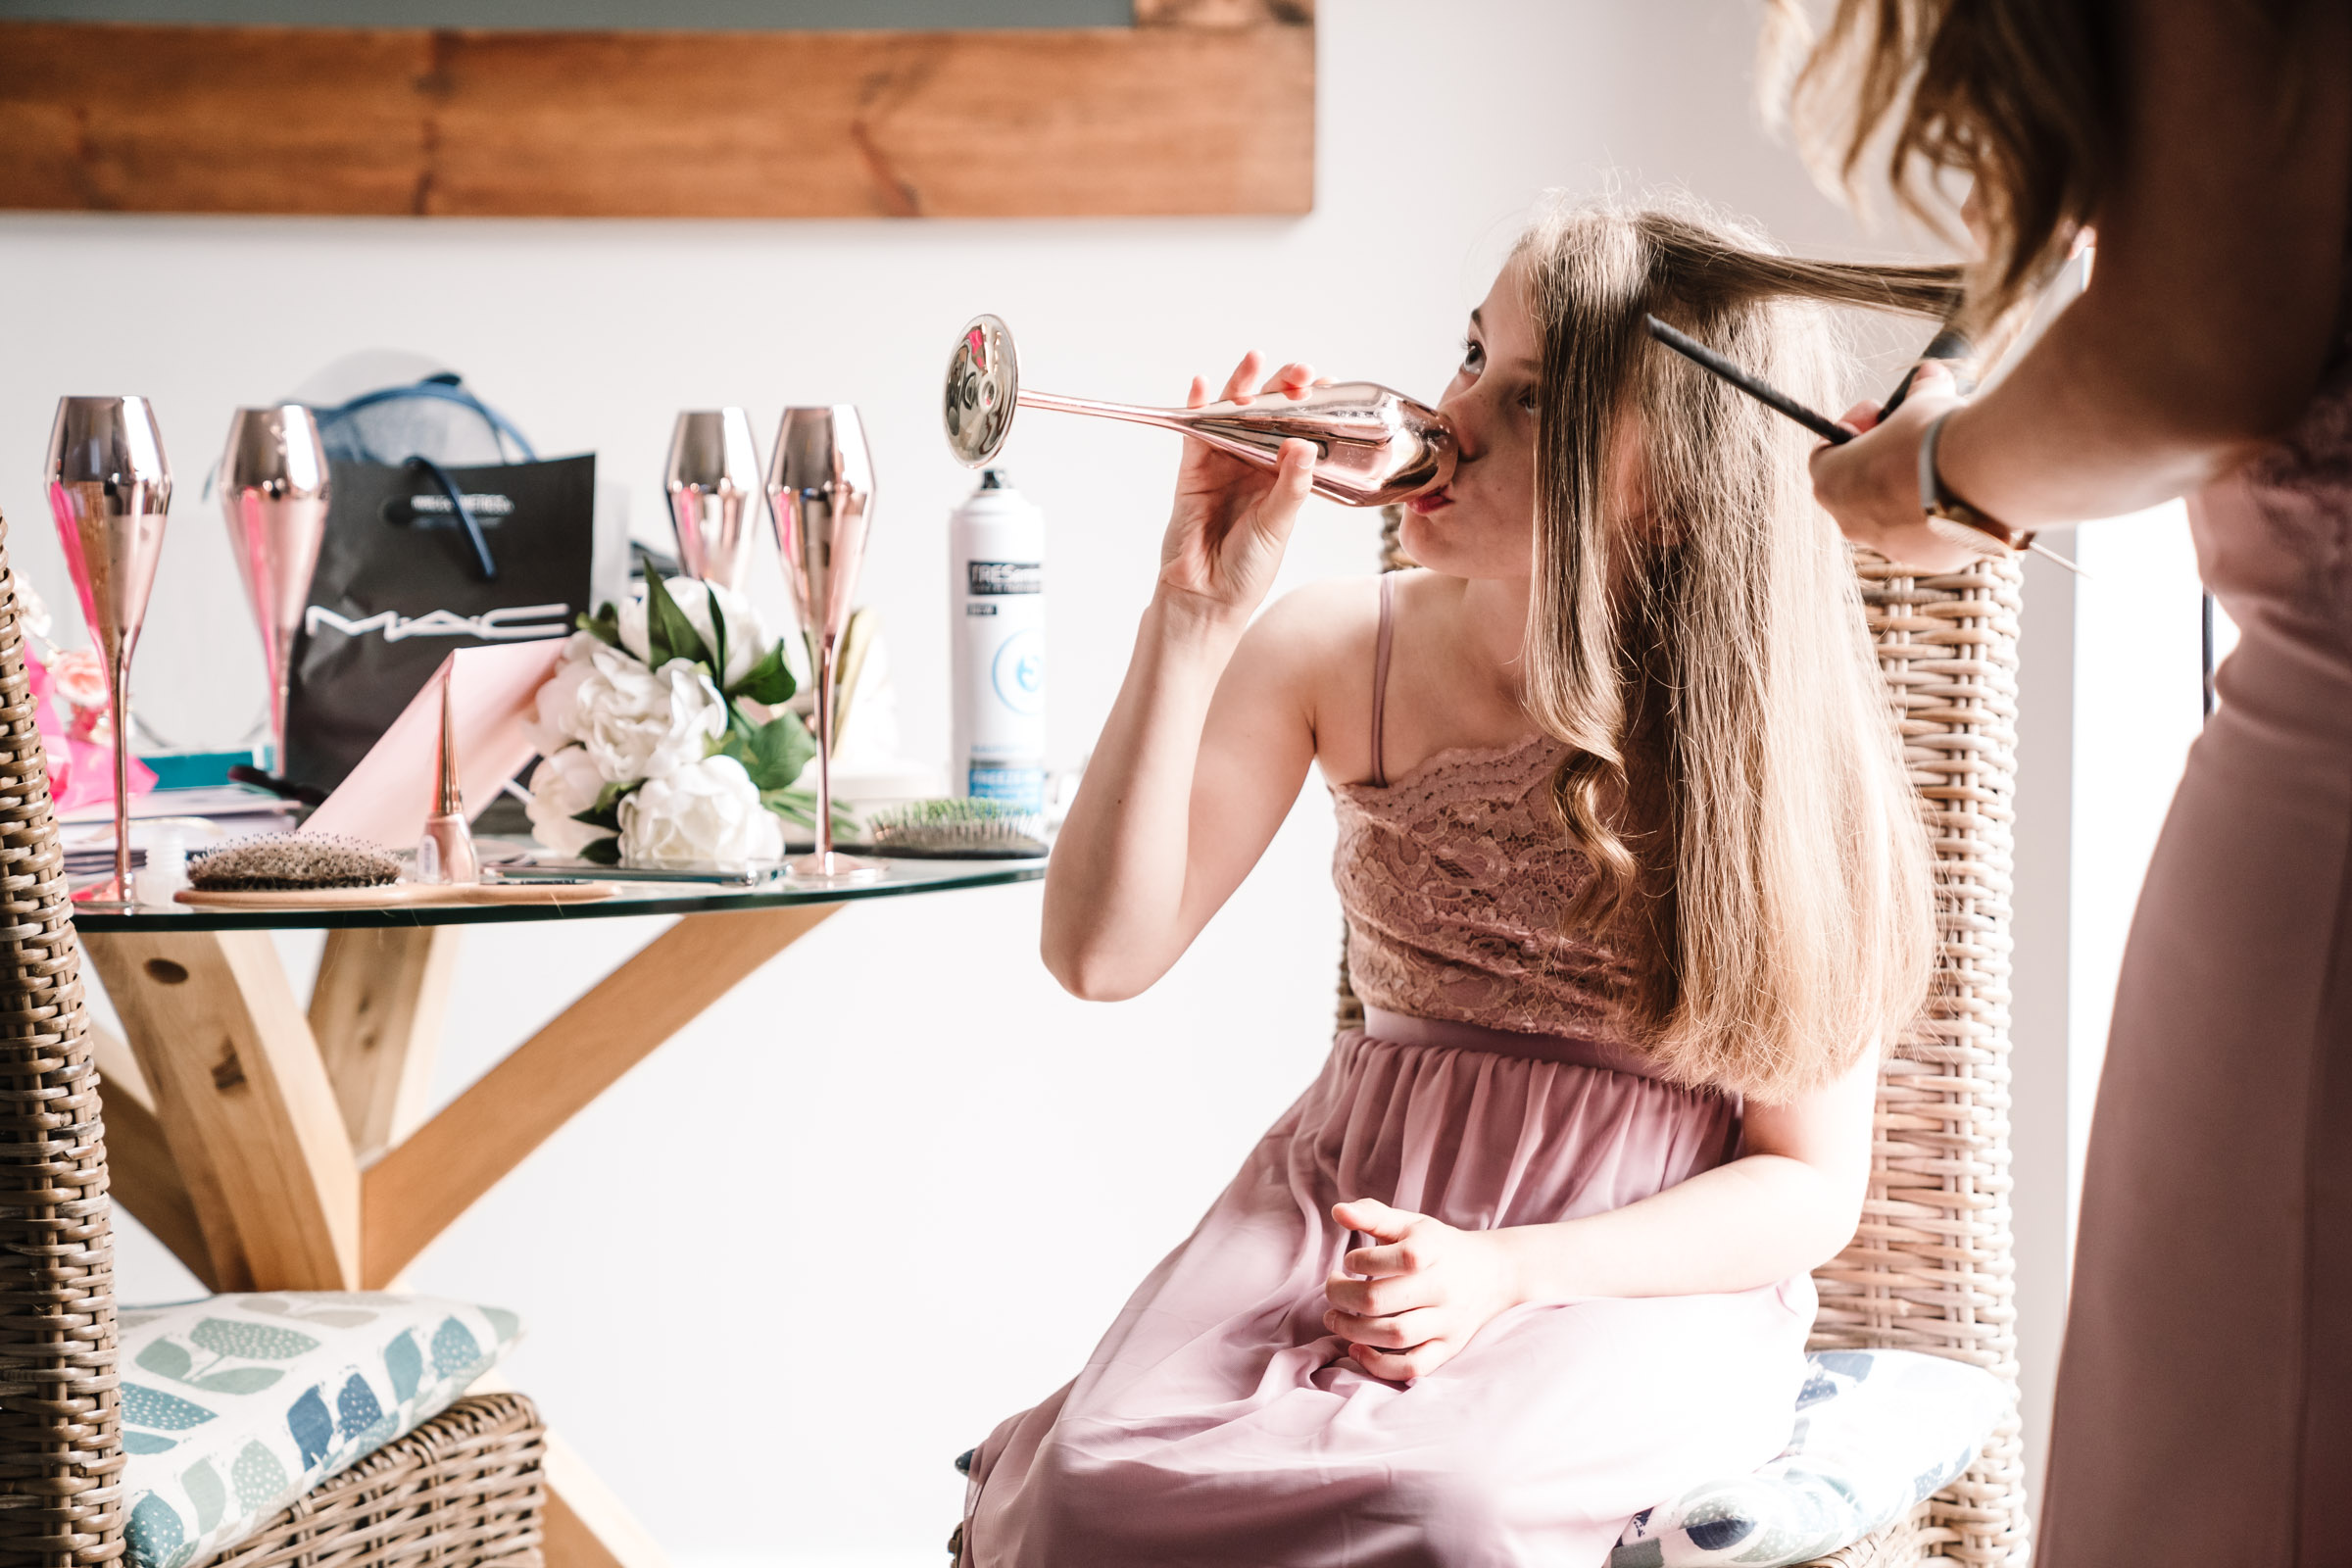 young bridesmaid swigging a drink from a champagne flute